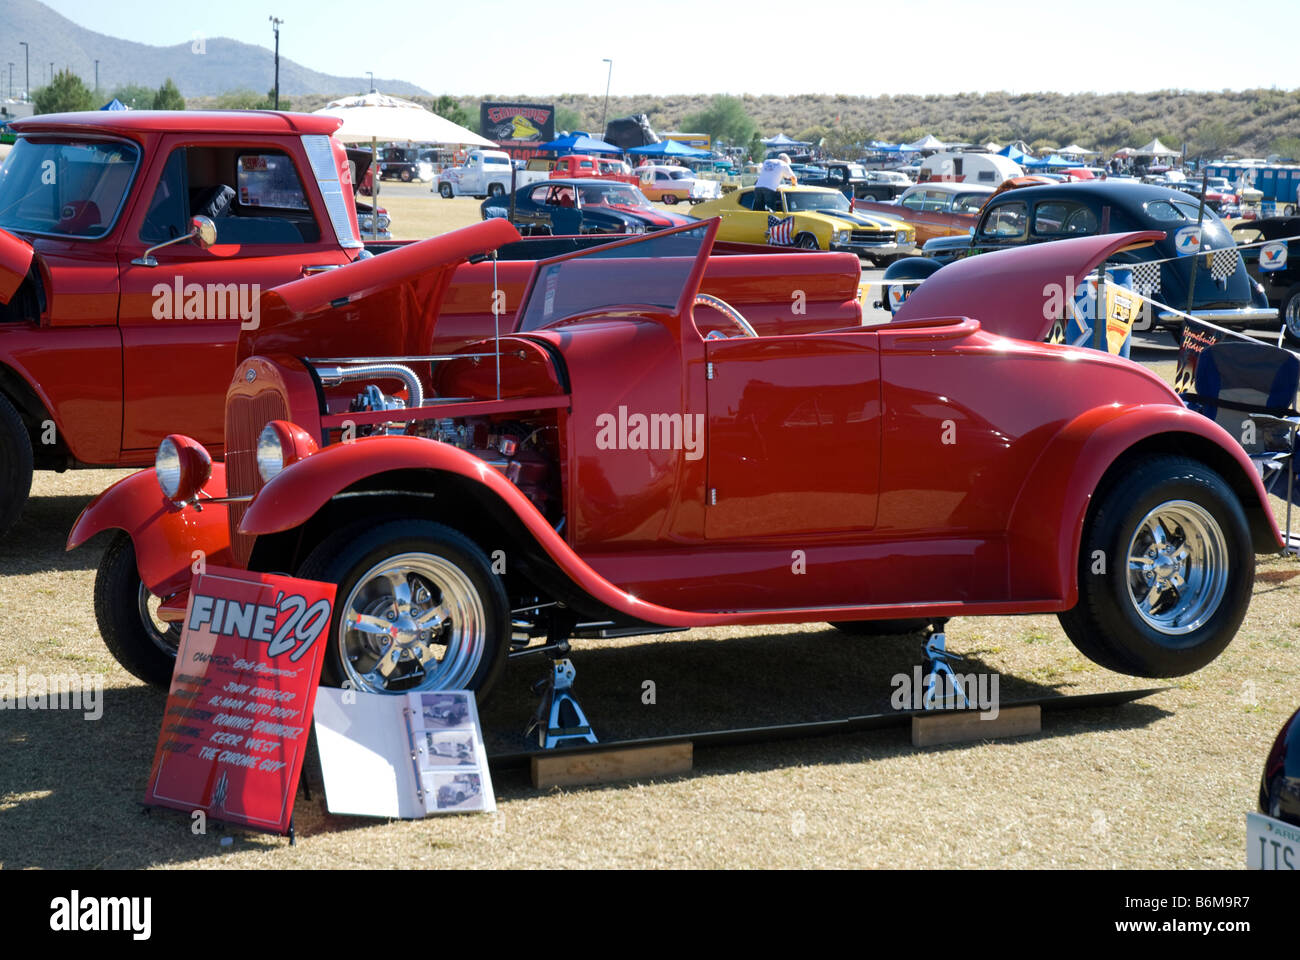 An old hot rod on display at a car show Stock Photo: 21345051 - Alamy